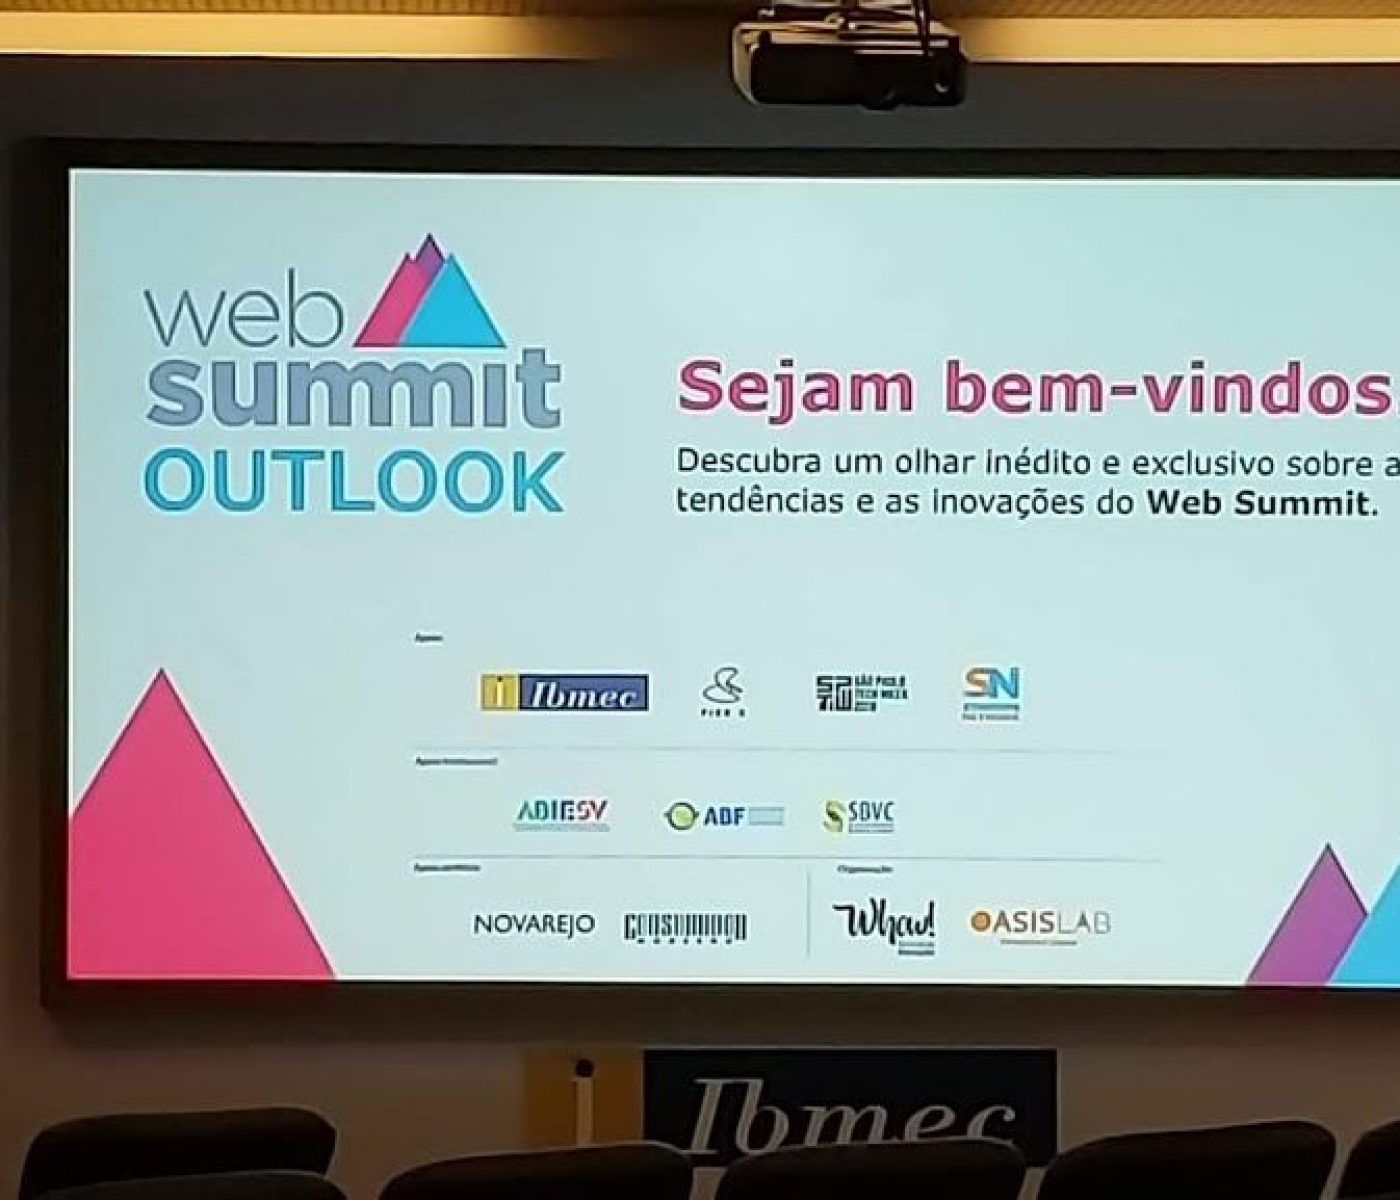 Web Summit Outlook